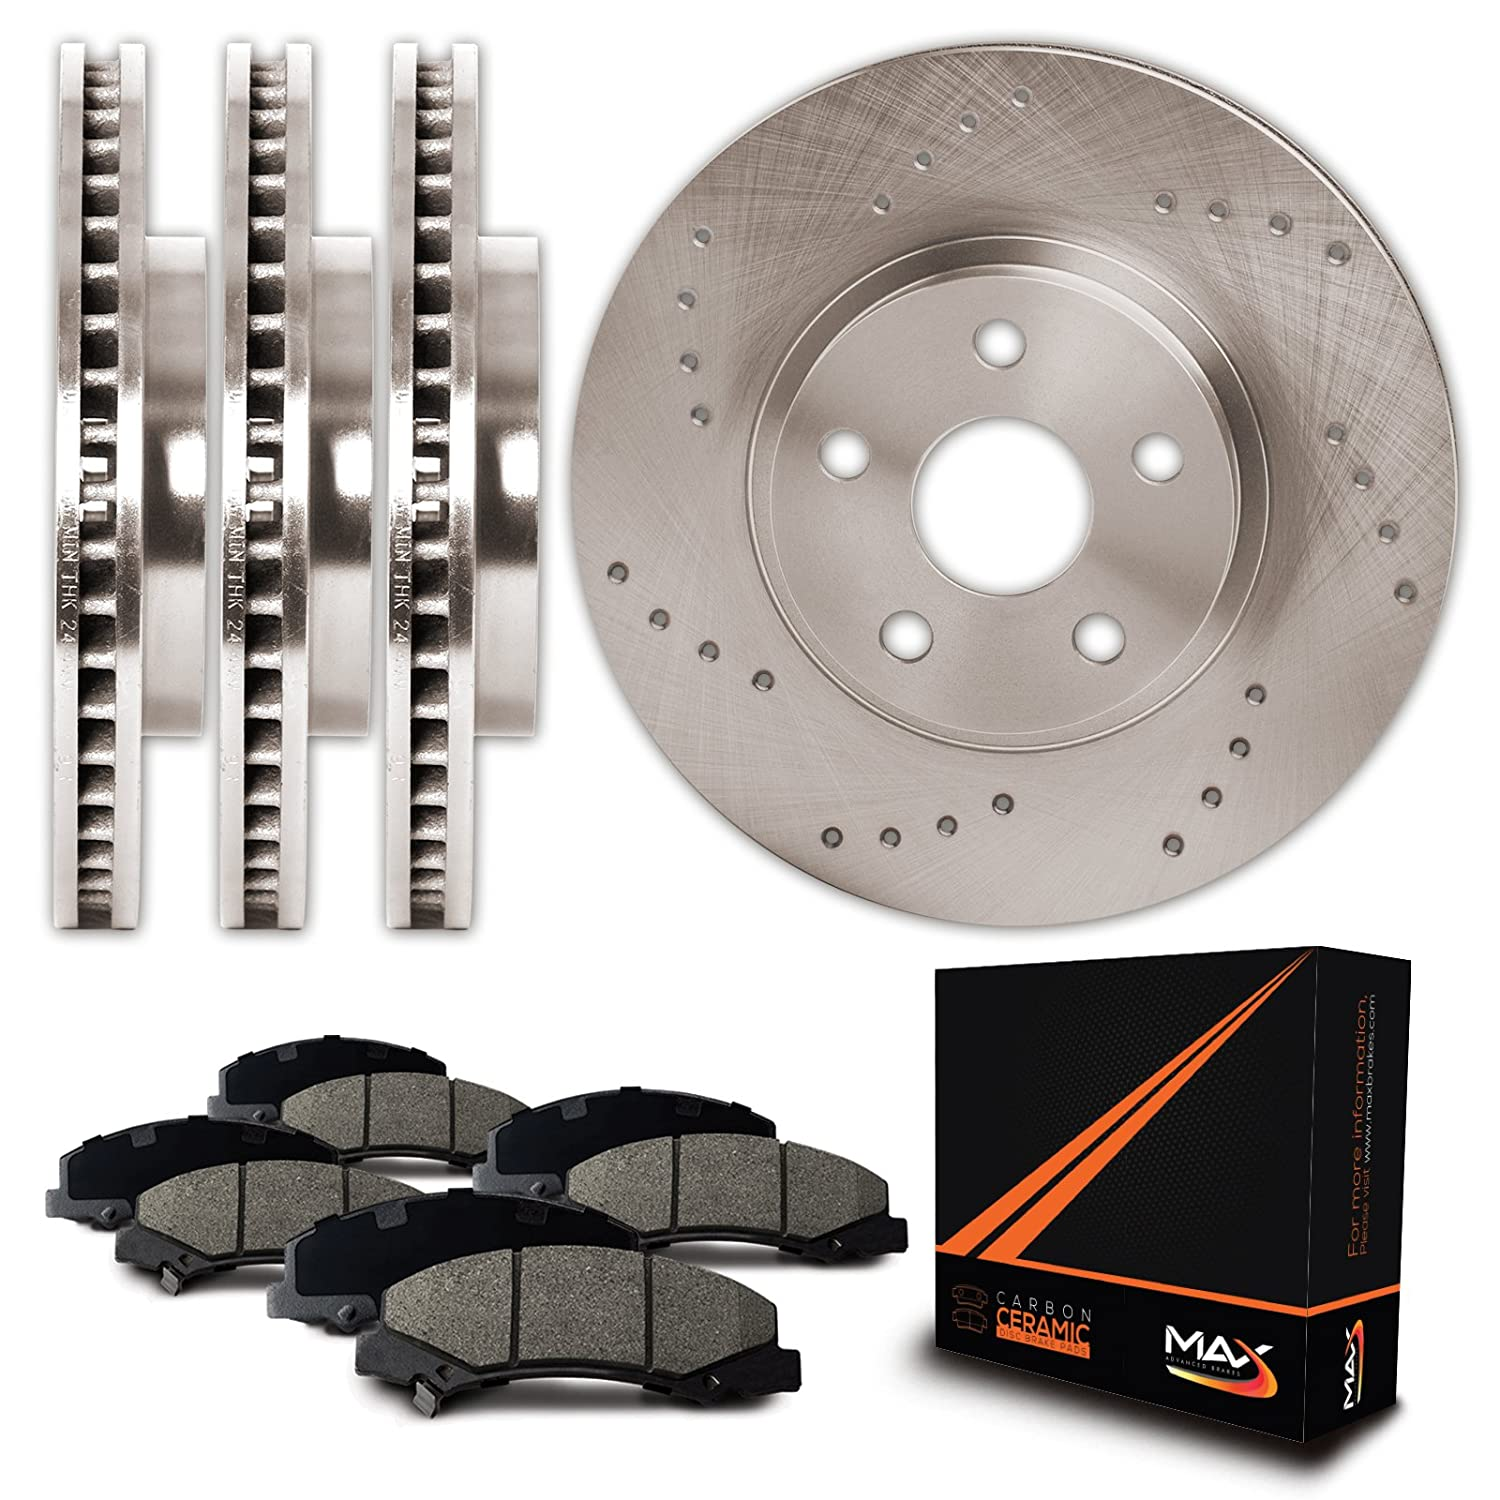 Max Brakes Cross Drilled Rotors w/Ceramic Brake Pads Front + Rear Performance Brake Kit KT059823 [Fits:2003-2011 Crown Victoria | Town Car | Grand Marquis ] Max Advanced Brakes